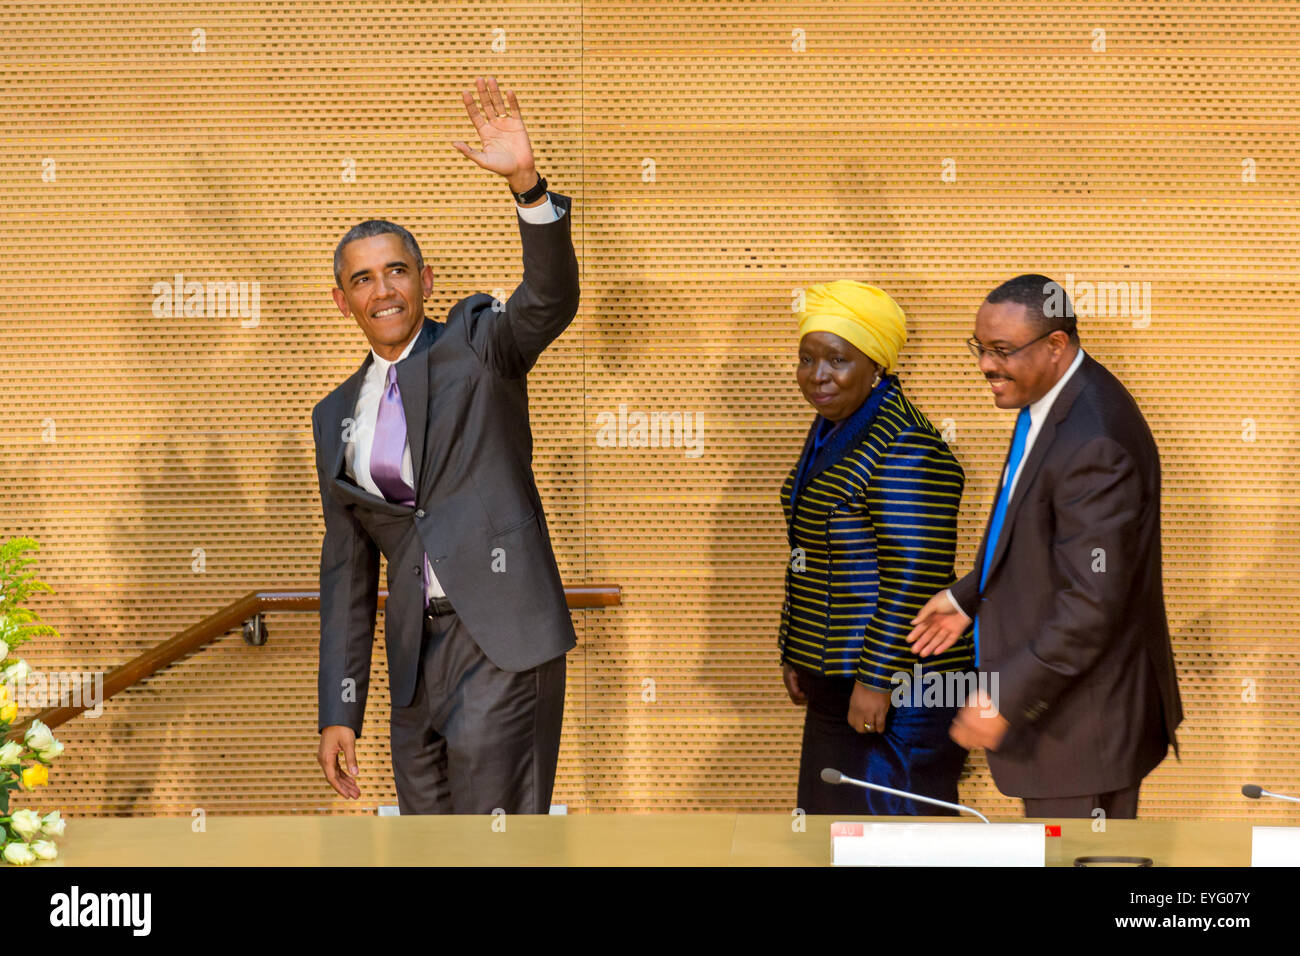 Addis Ababa, Ethiopia. 28th July, 2015. President Obama waves to the enthusiastic crowd attending his speech, on - Stock Image